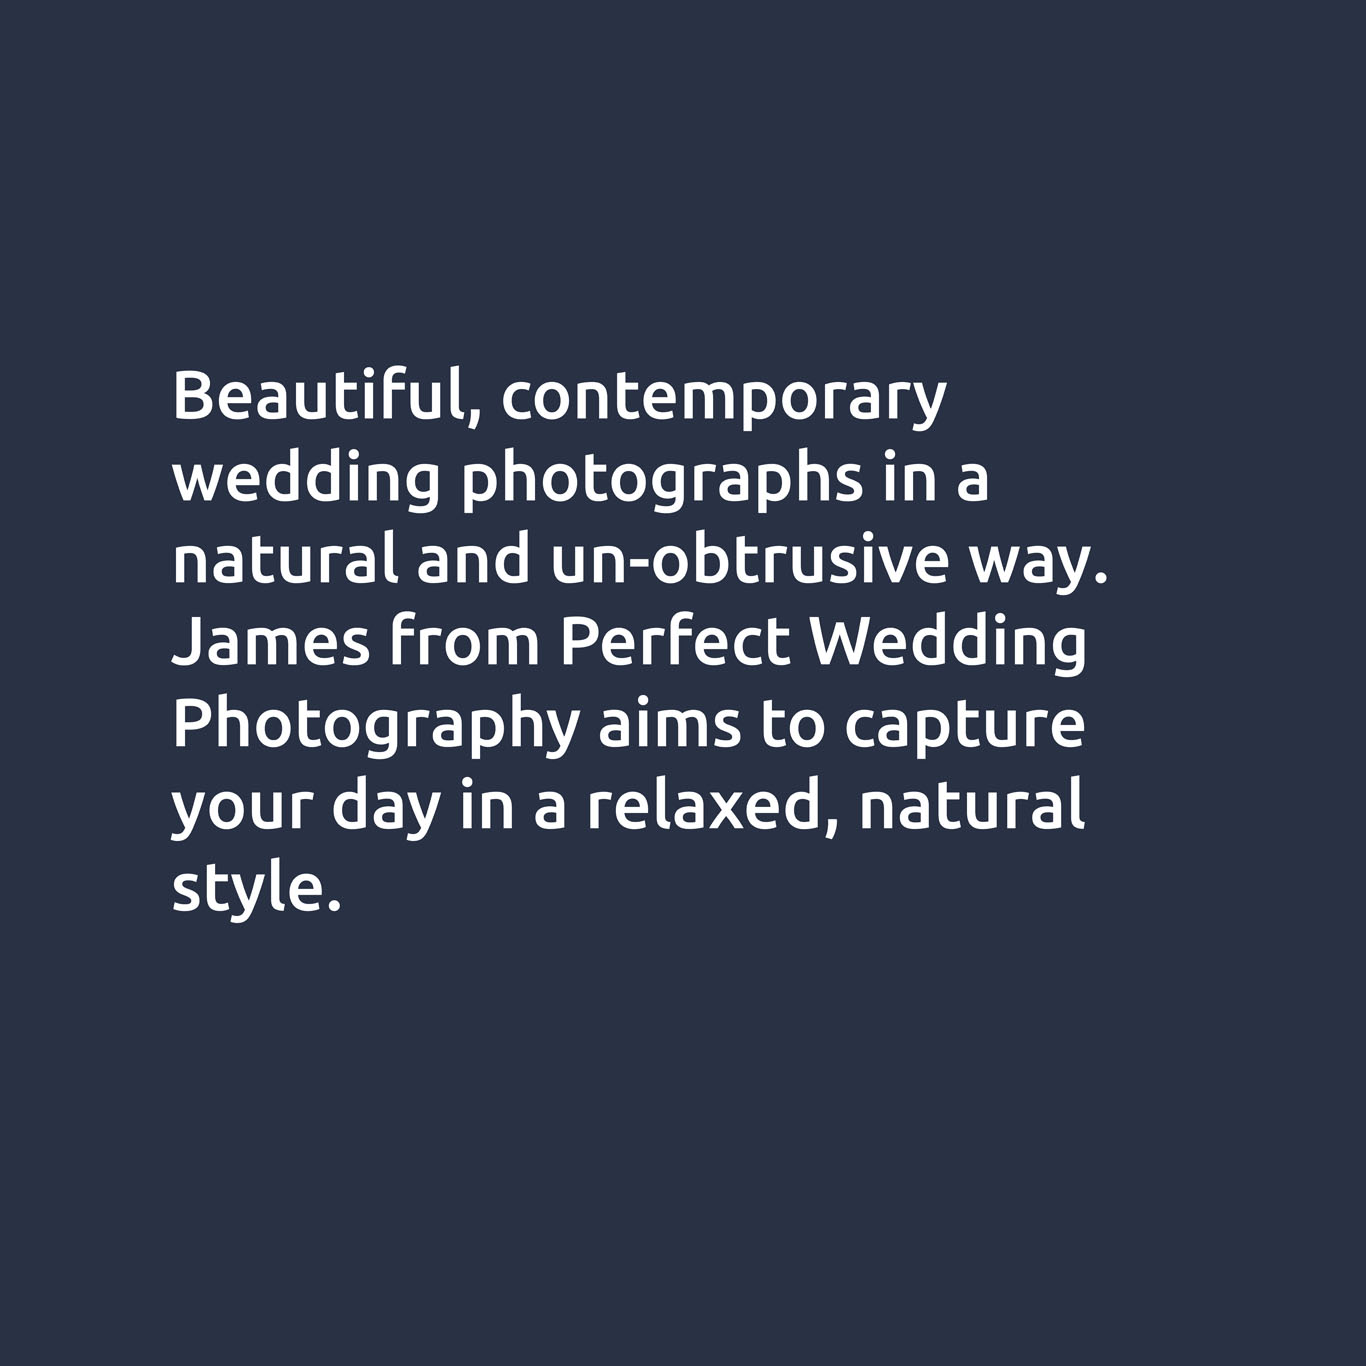 Beautiful, contemporary wedding photographs in a natural and unobtrusive way.  James from Perfect Wedding Photography aims to capture your day in a relaxed, natural style.